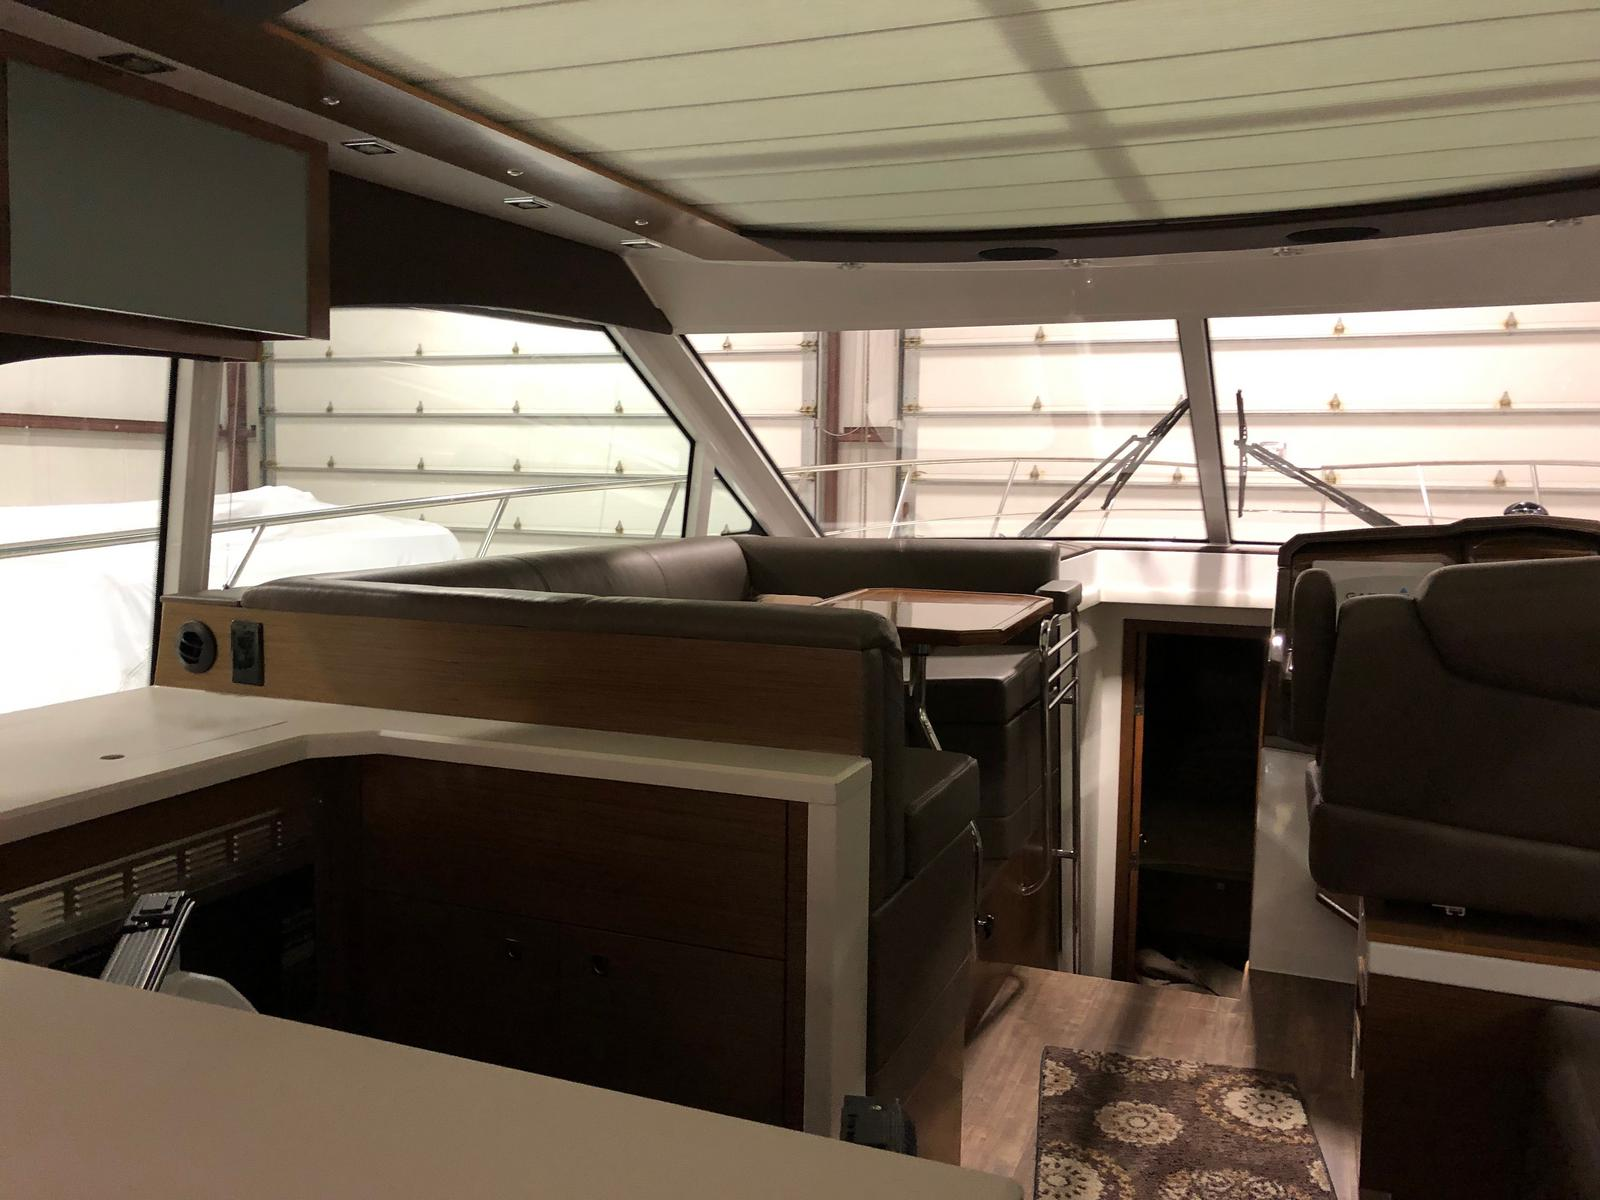 2016 Cruisers Yachts boat for sale, model of the boat is 45 Cantius & Image # 15 of 16